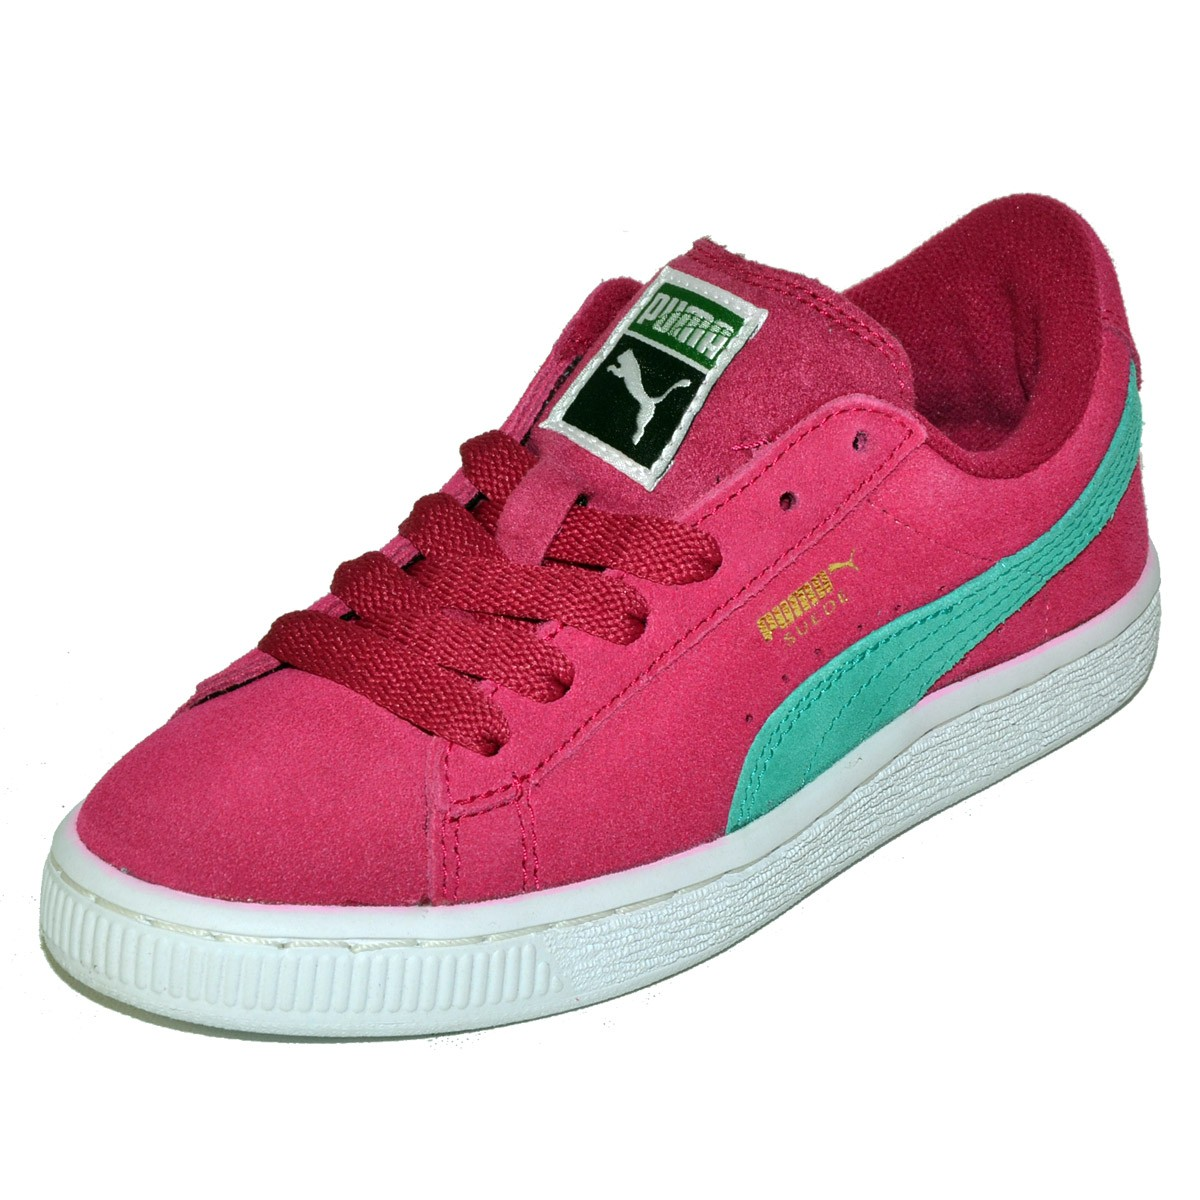 48dc2dcba7cb PUMA Suede Pink JR Junior Youth Big Kids Girls Shoes Sneaker - MyCraze